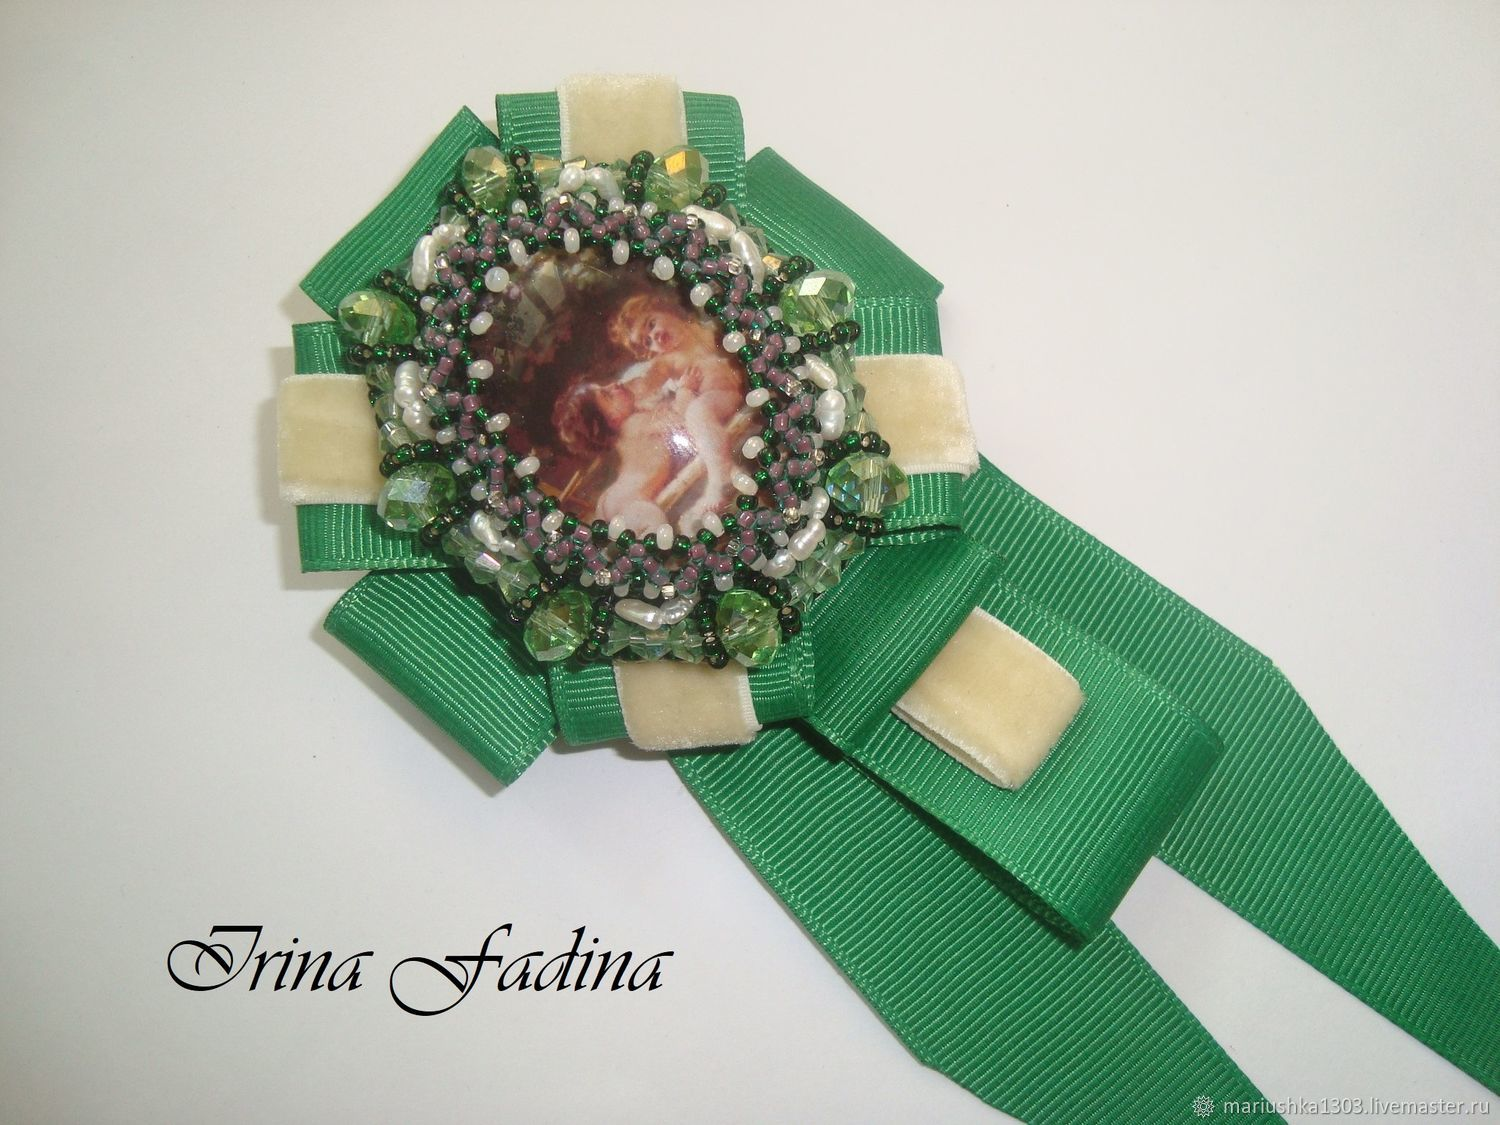 Brooch-order with a tie of white pearls 'Amurchiki', Brooches, Voskresensk,  Фото №1